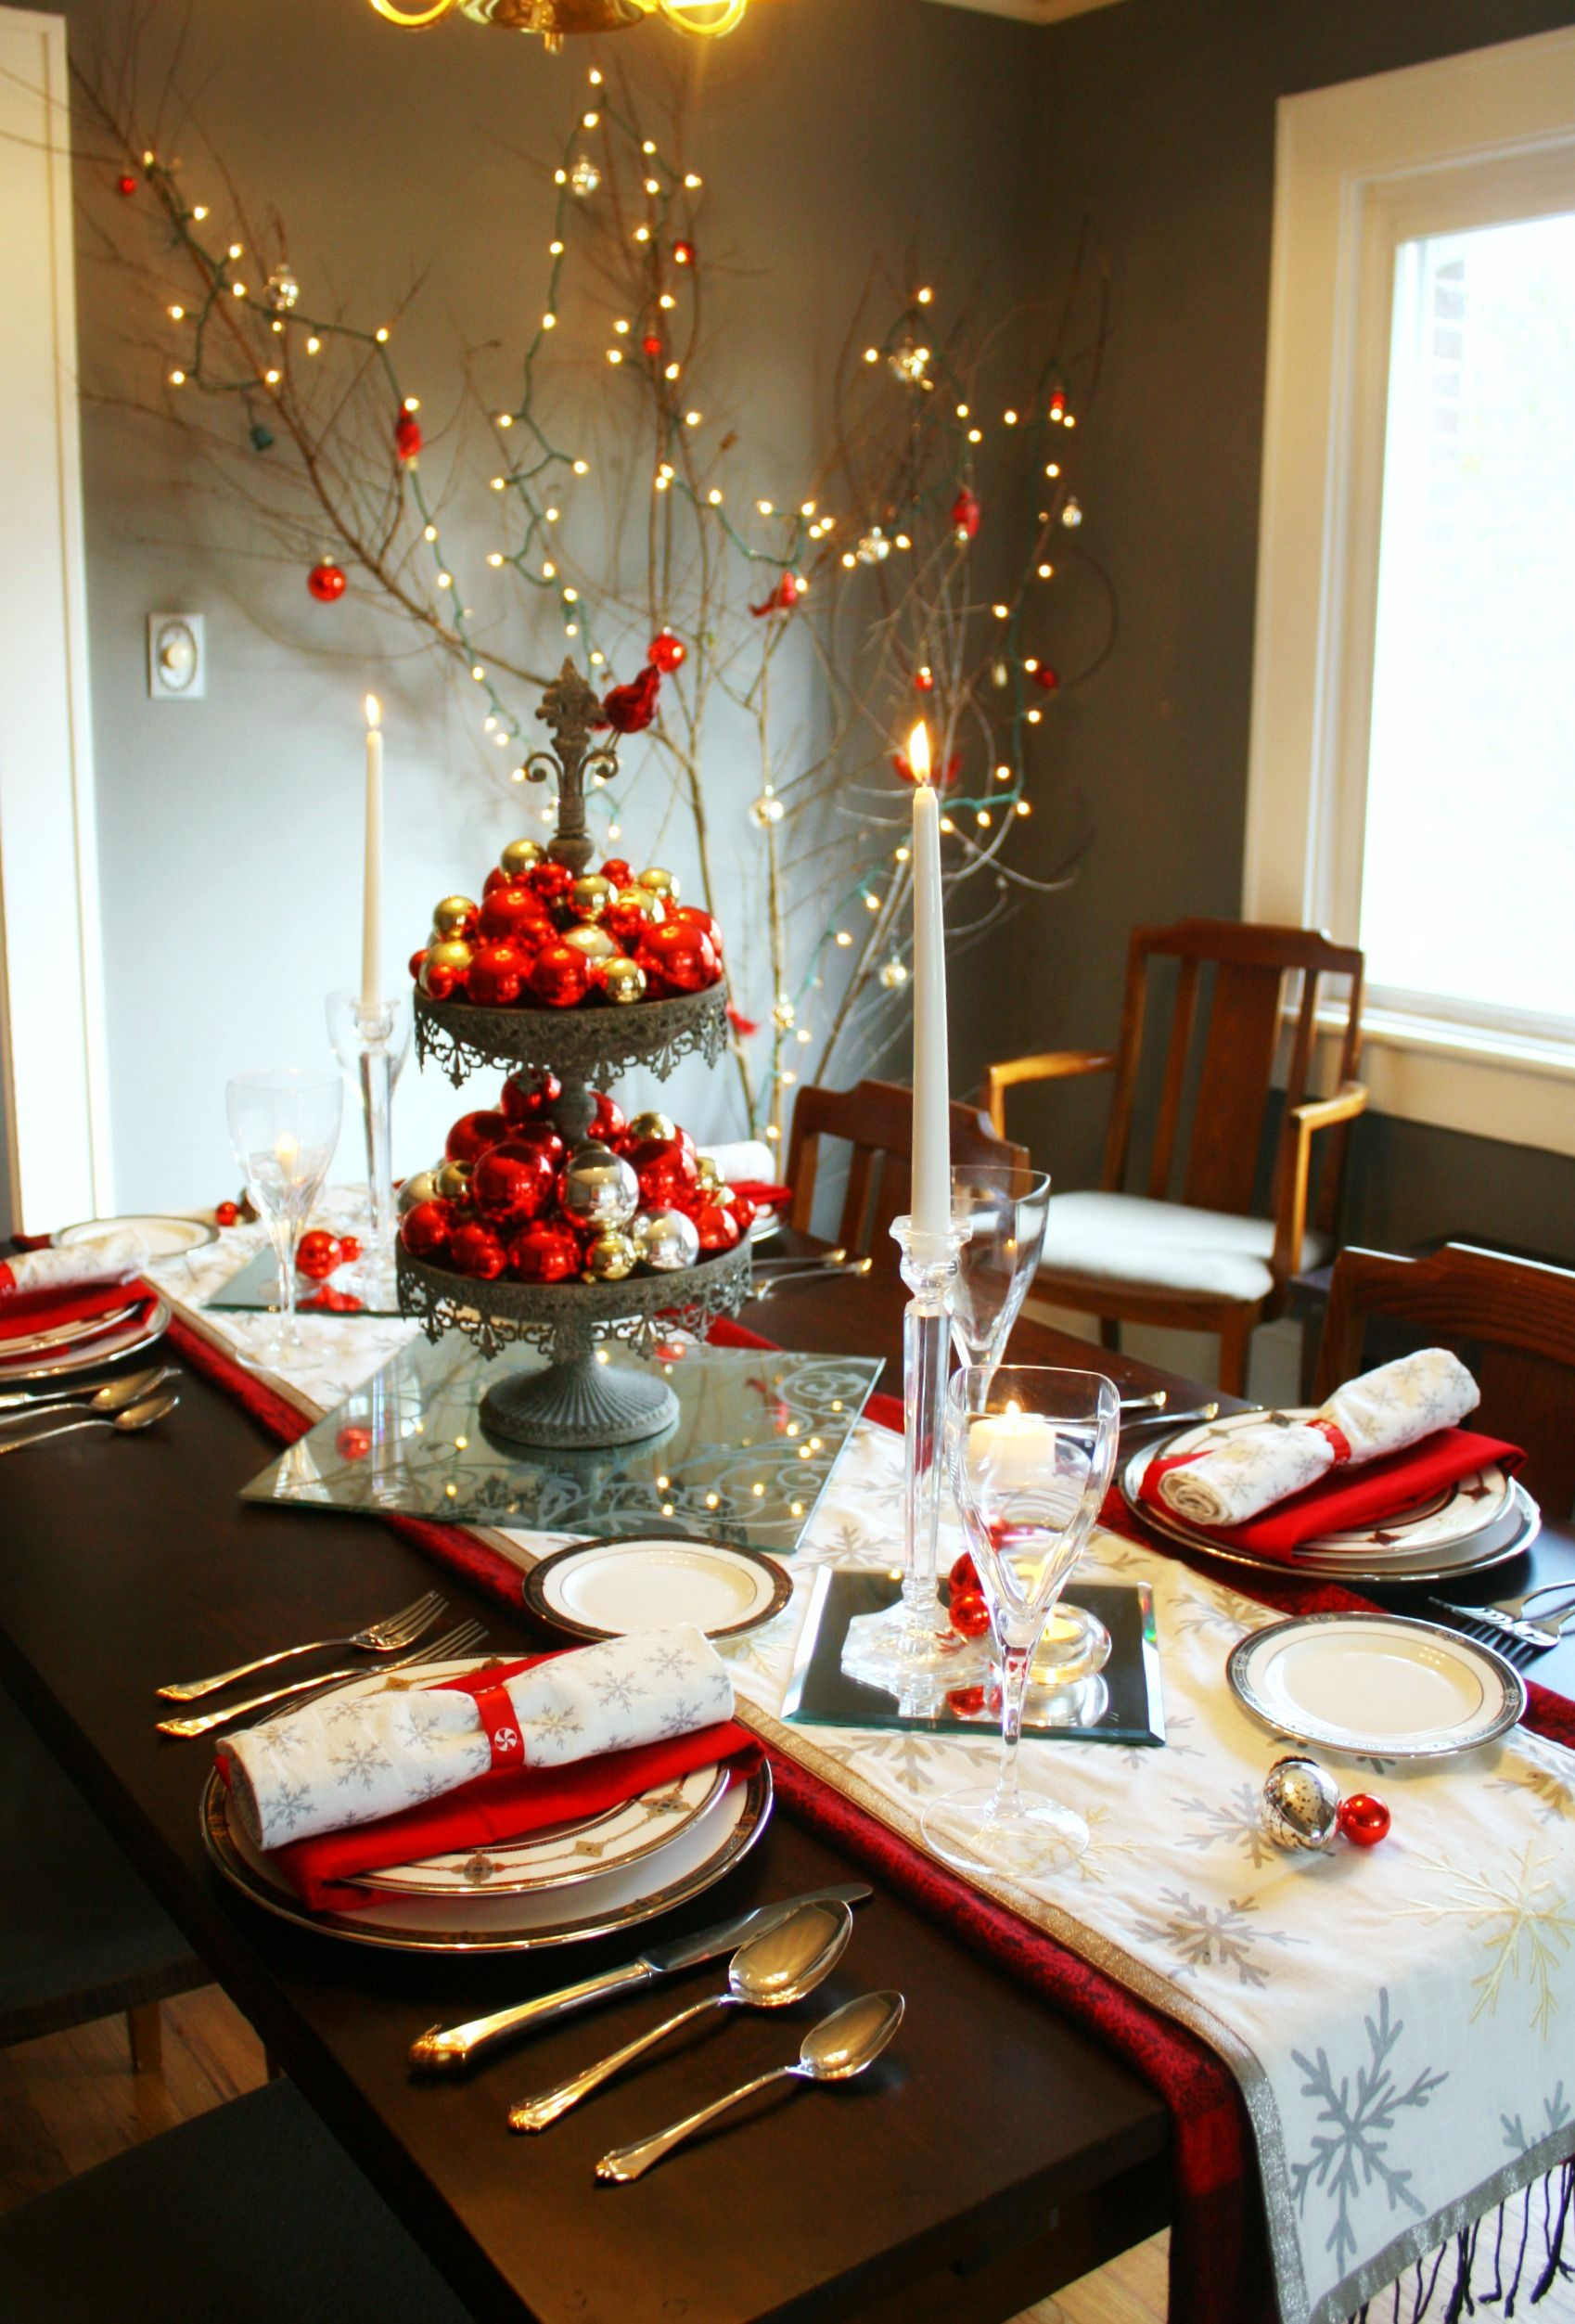 Christmas Dinner Table Centerpieces top 10 inspirational ideas for christmas dinner table | silver